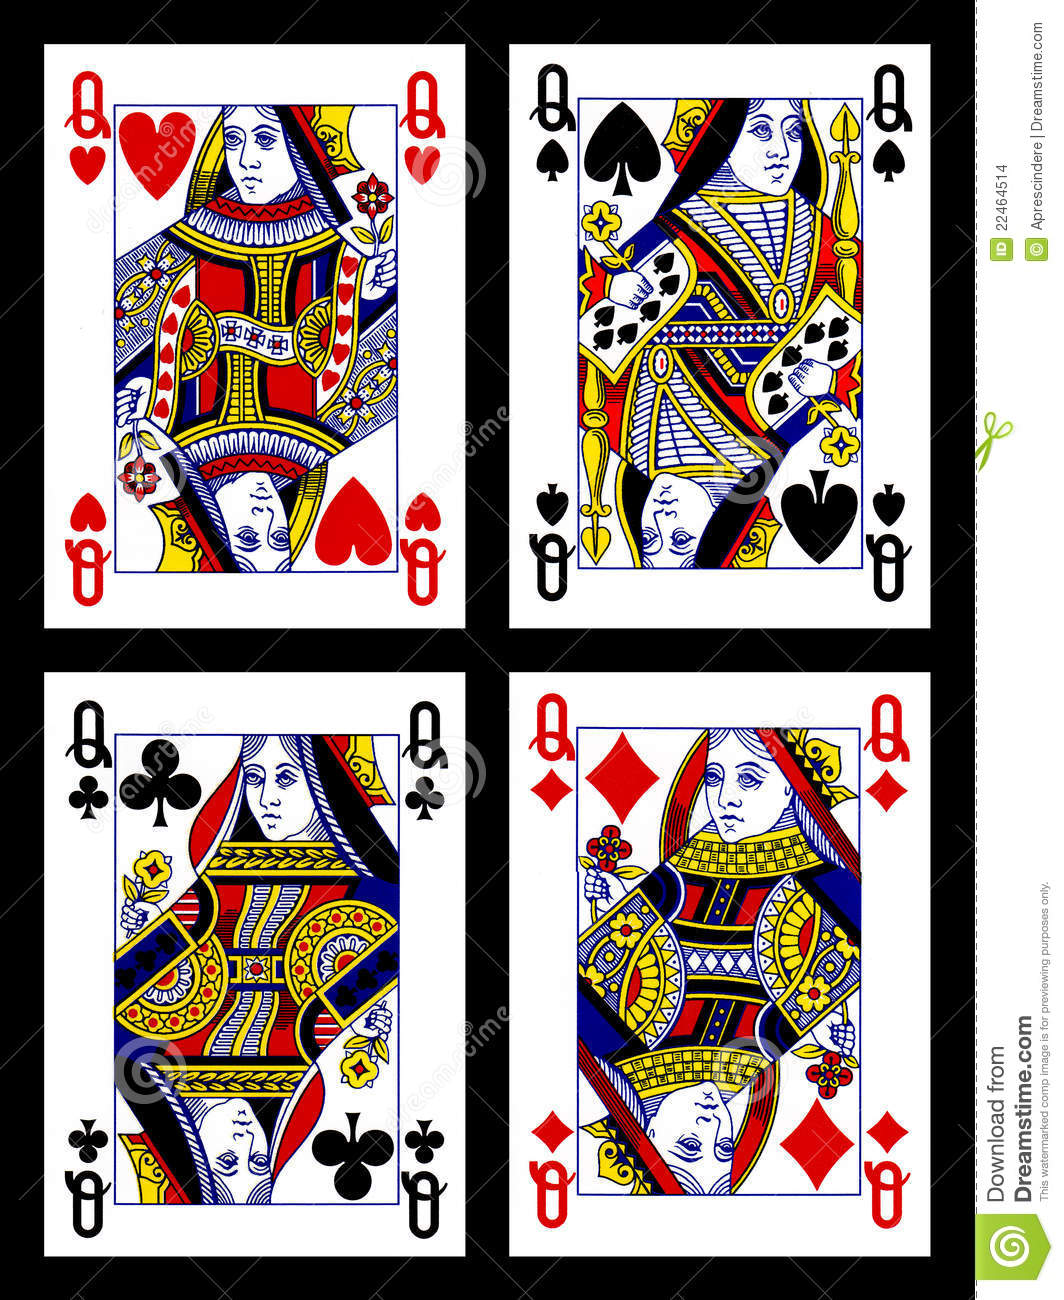 Deck of cards queens